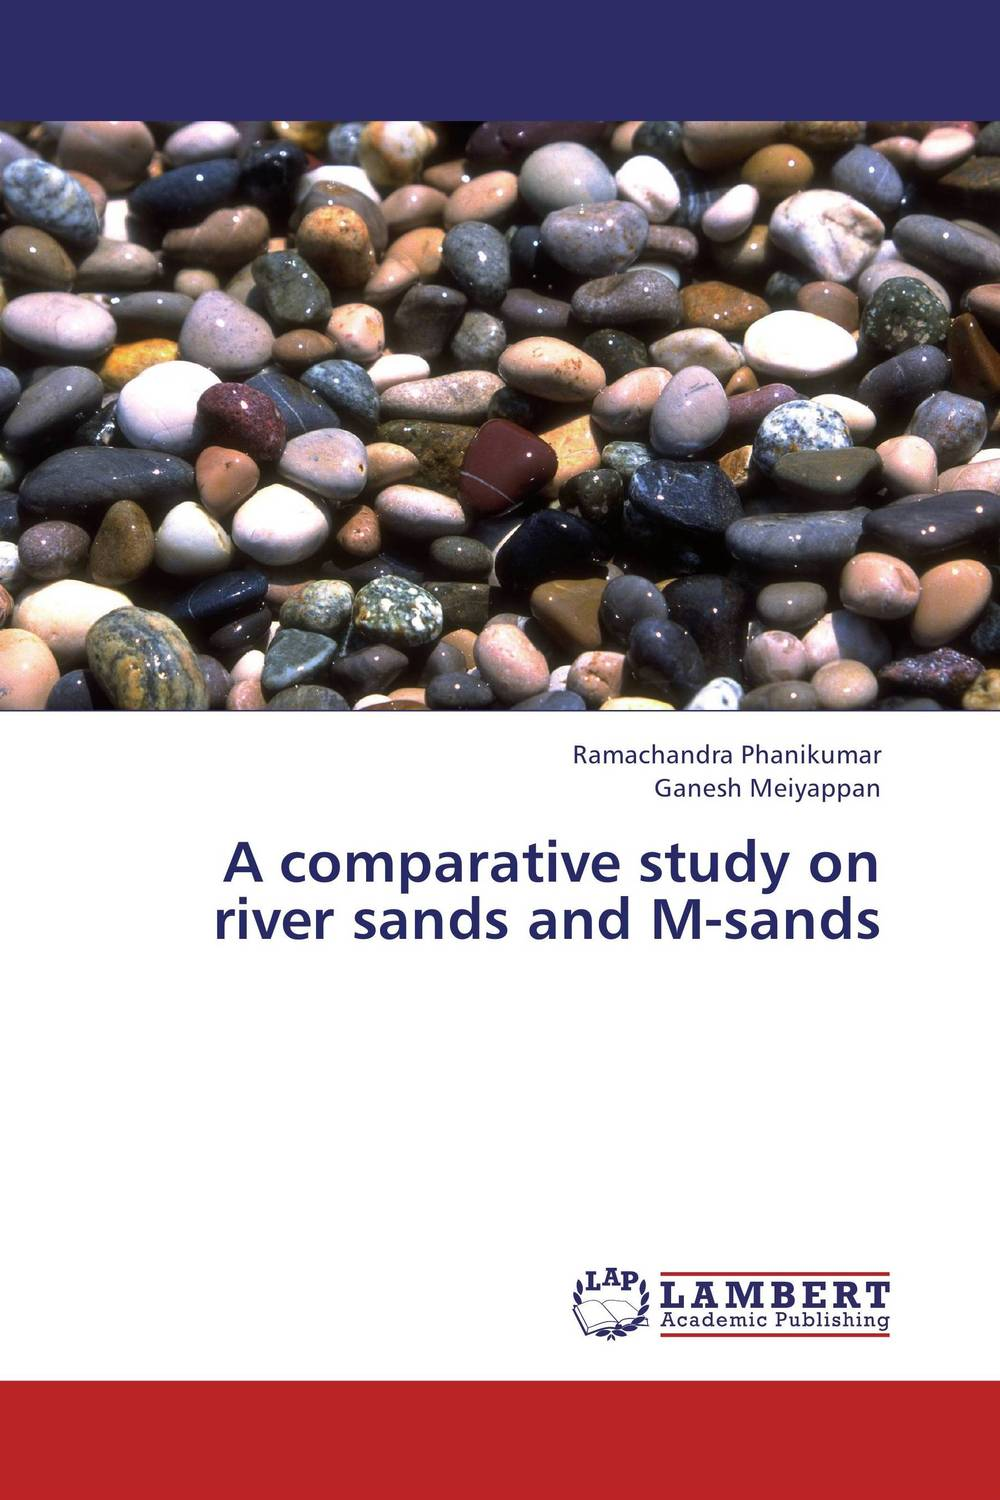 A comparative study on river sands and M-sands rakesh bhatia surinder bir singh and harpreet kaur organizational development comparative study of engineering colleges